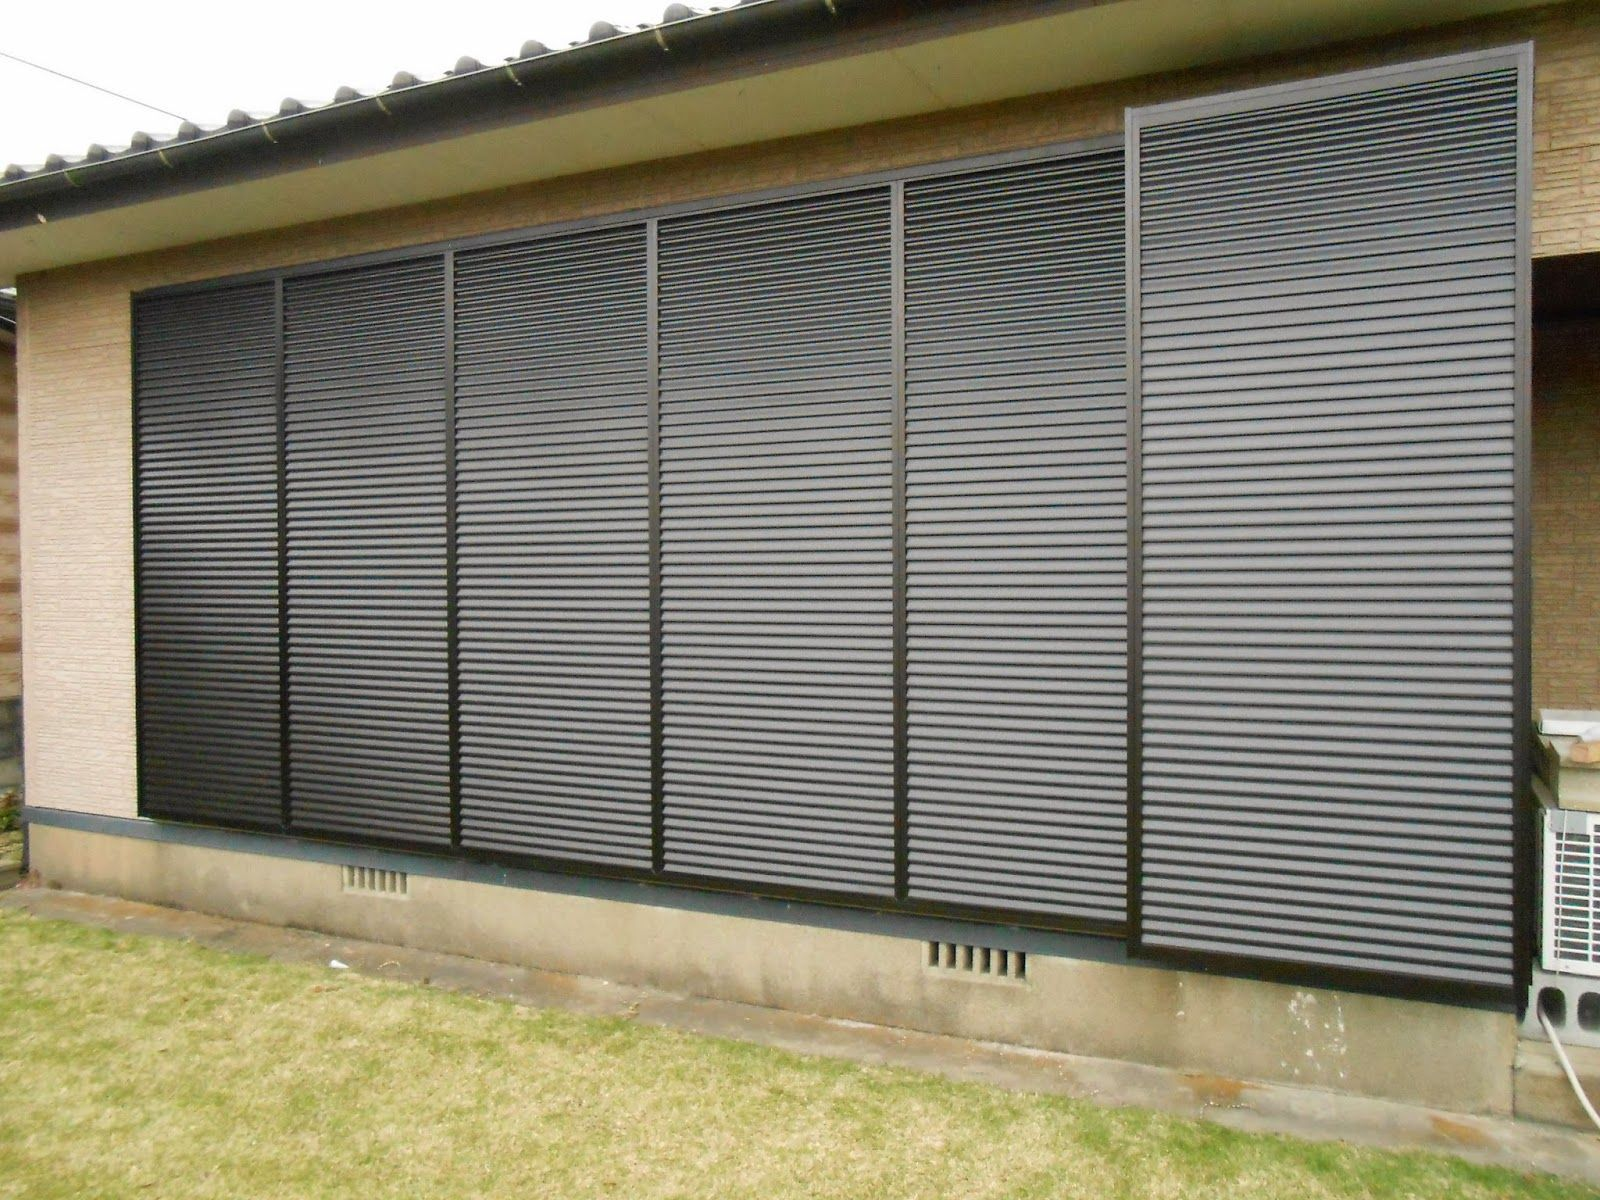 Most Of Japanese Houses Have Sliding Shutter Doors By Windows A Sliding Shutter Door Is Very Important And It Sliding Shutters Patio Door Shutters Patio Doors